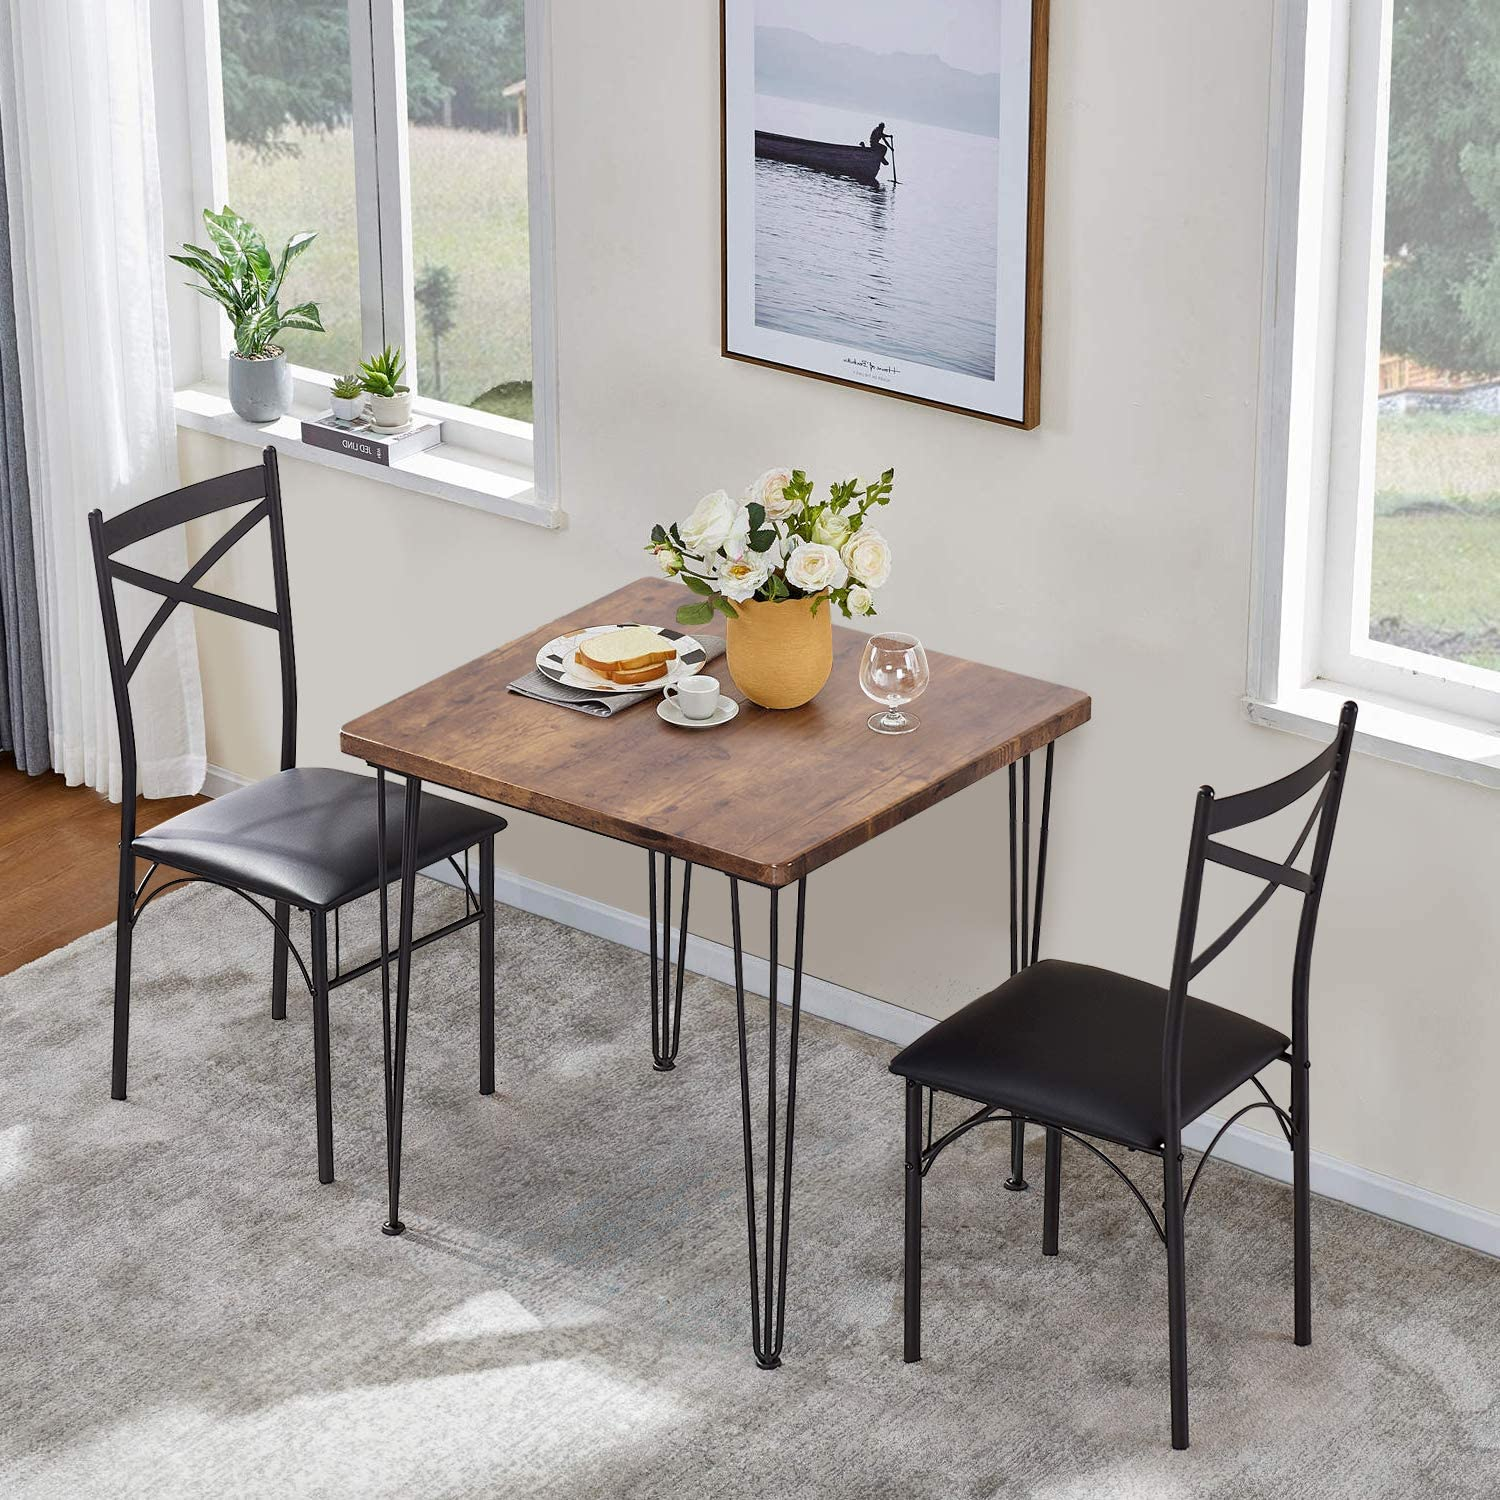 Buy VECELO 9 Piece Dining Table Set 9 Chairs with Metal Legs for ...